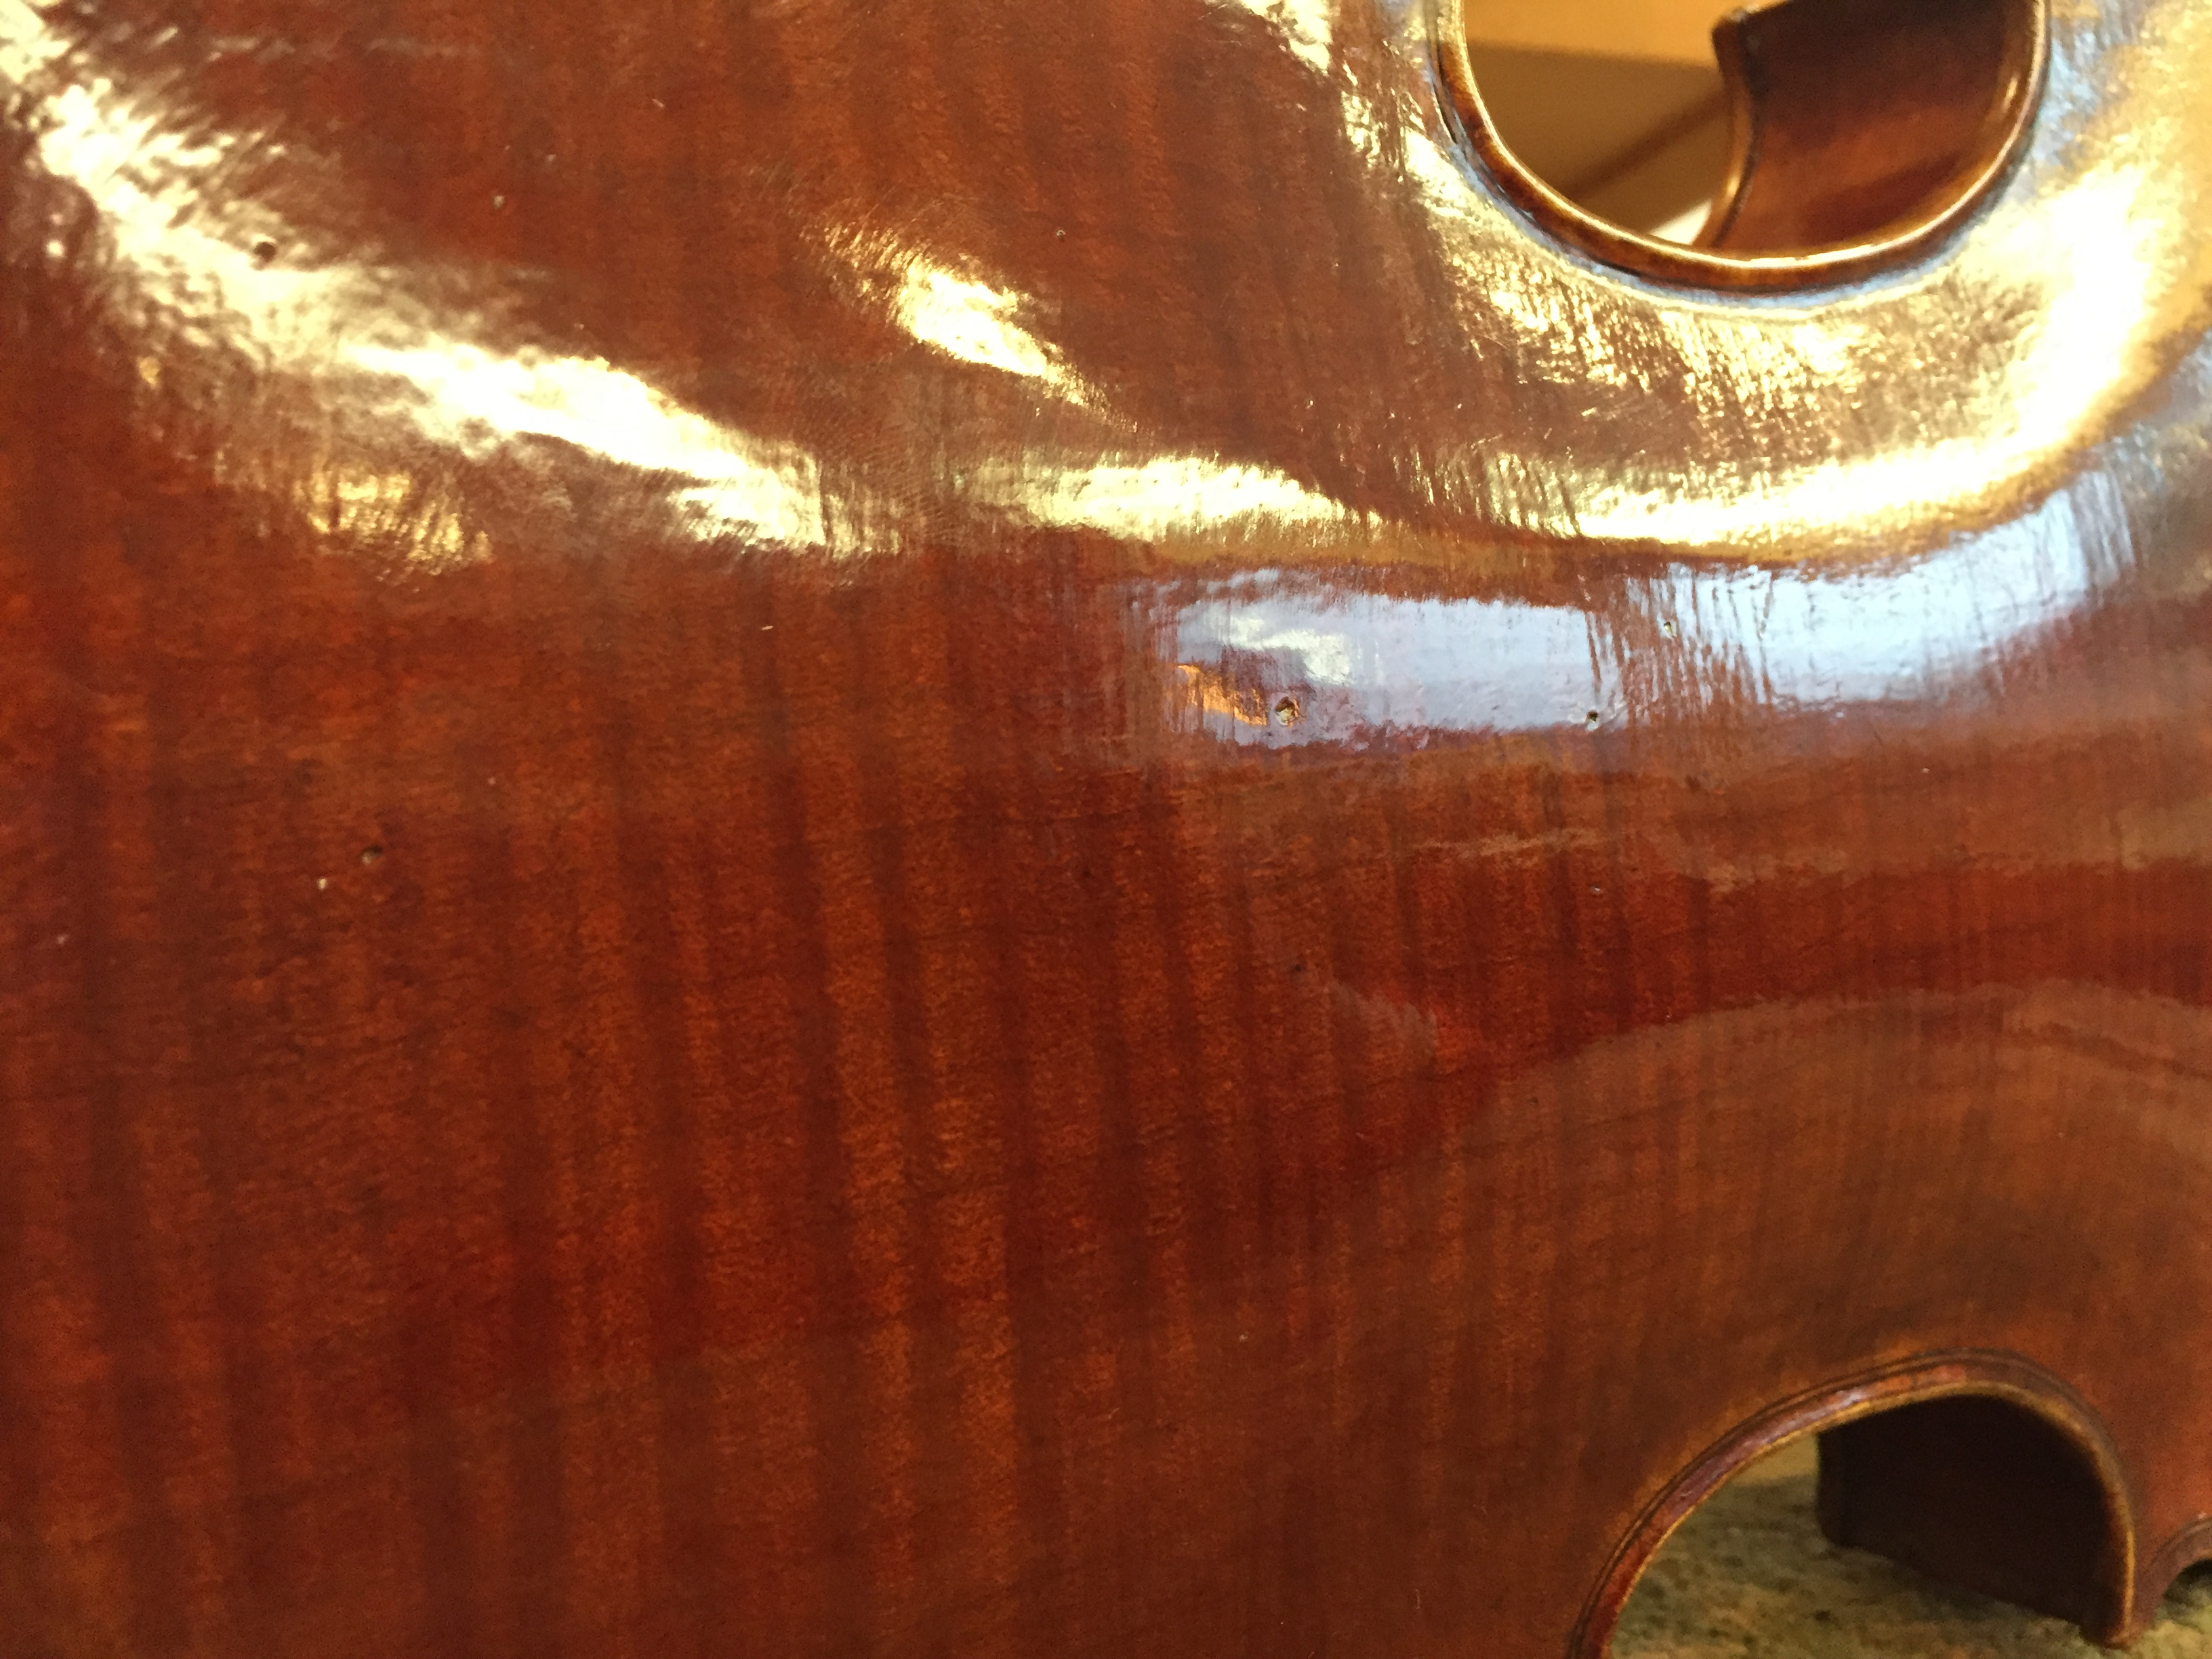 Laura Wallace violin, Big Leaf maple back, red varnish texture.